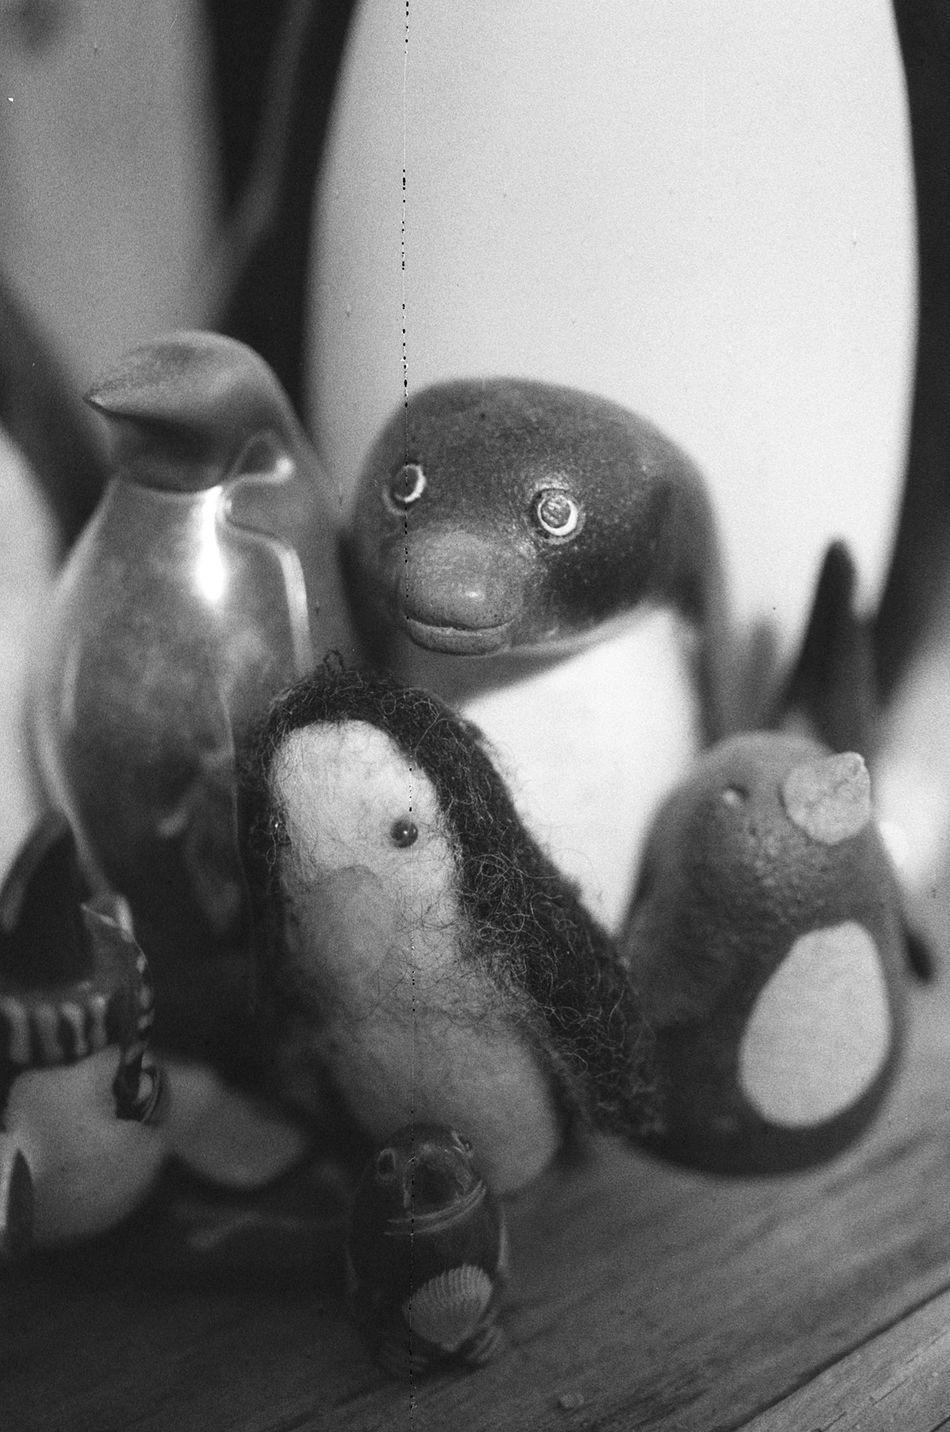 Animal Representation Animal Themes Black And White Blackandwhite Blackandwhite Photography Canon EOS 500N Close-up Film Is Not Dead Film Photography Filmisnotdead Filmphotography Indoors  Ishootfilm Lucky Film No People Penguin Penguins Stuffed Toy